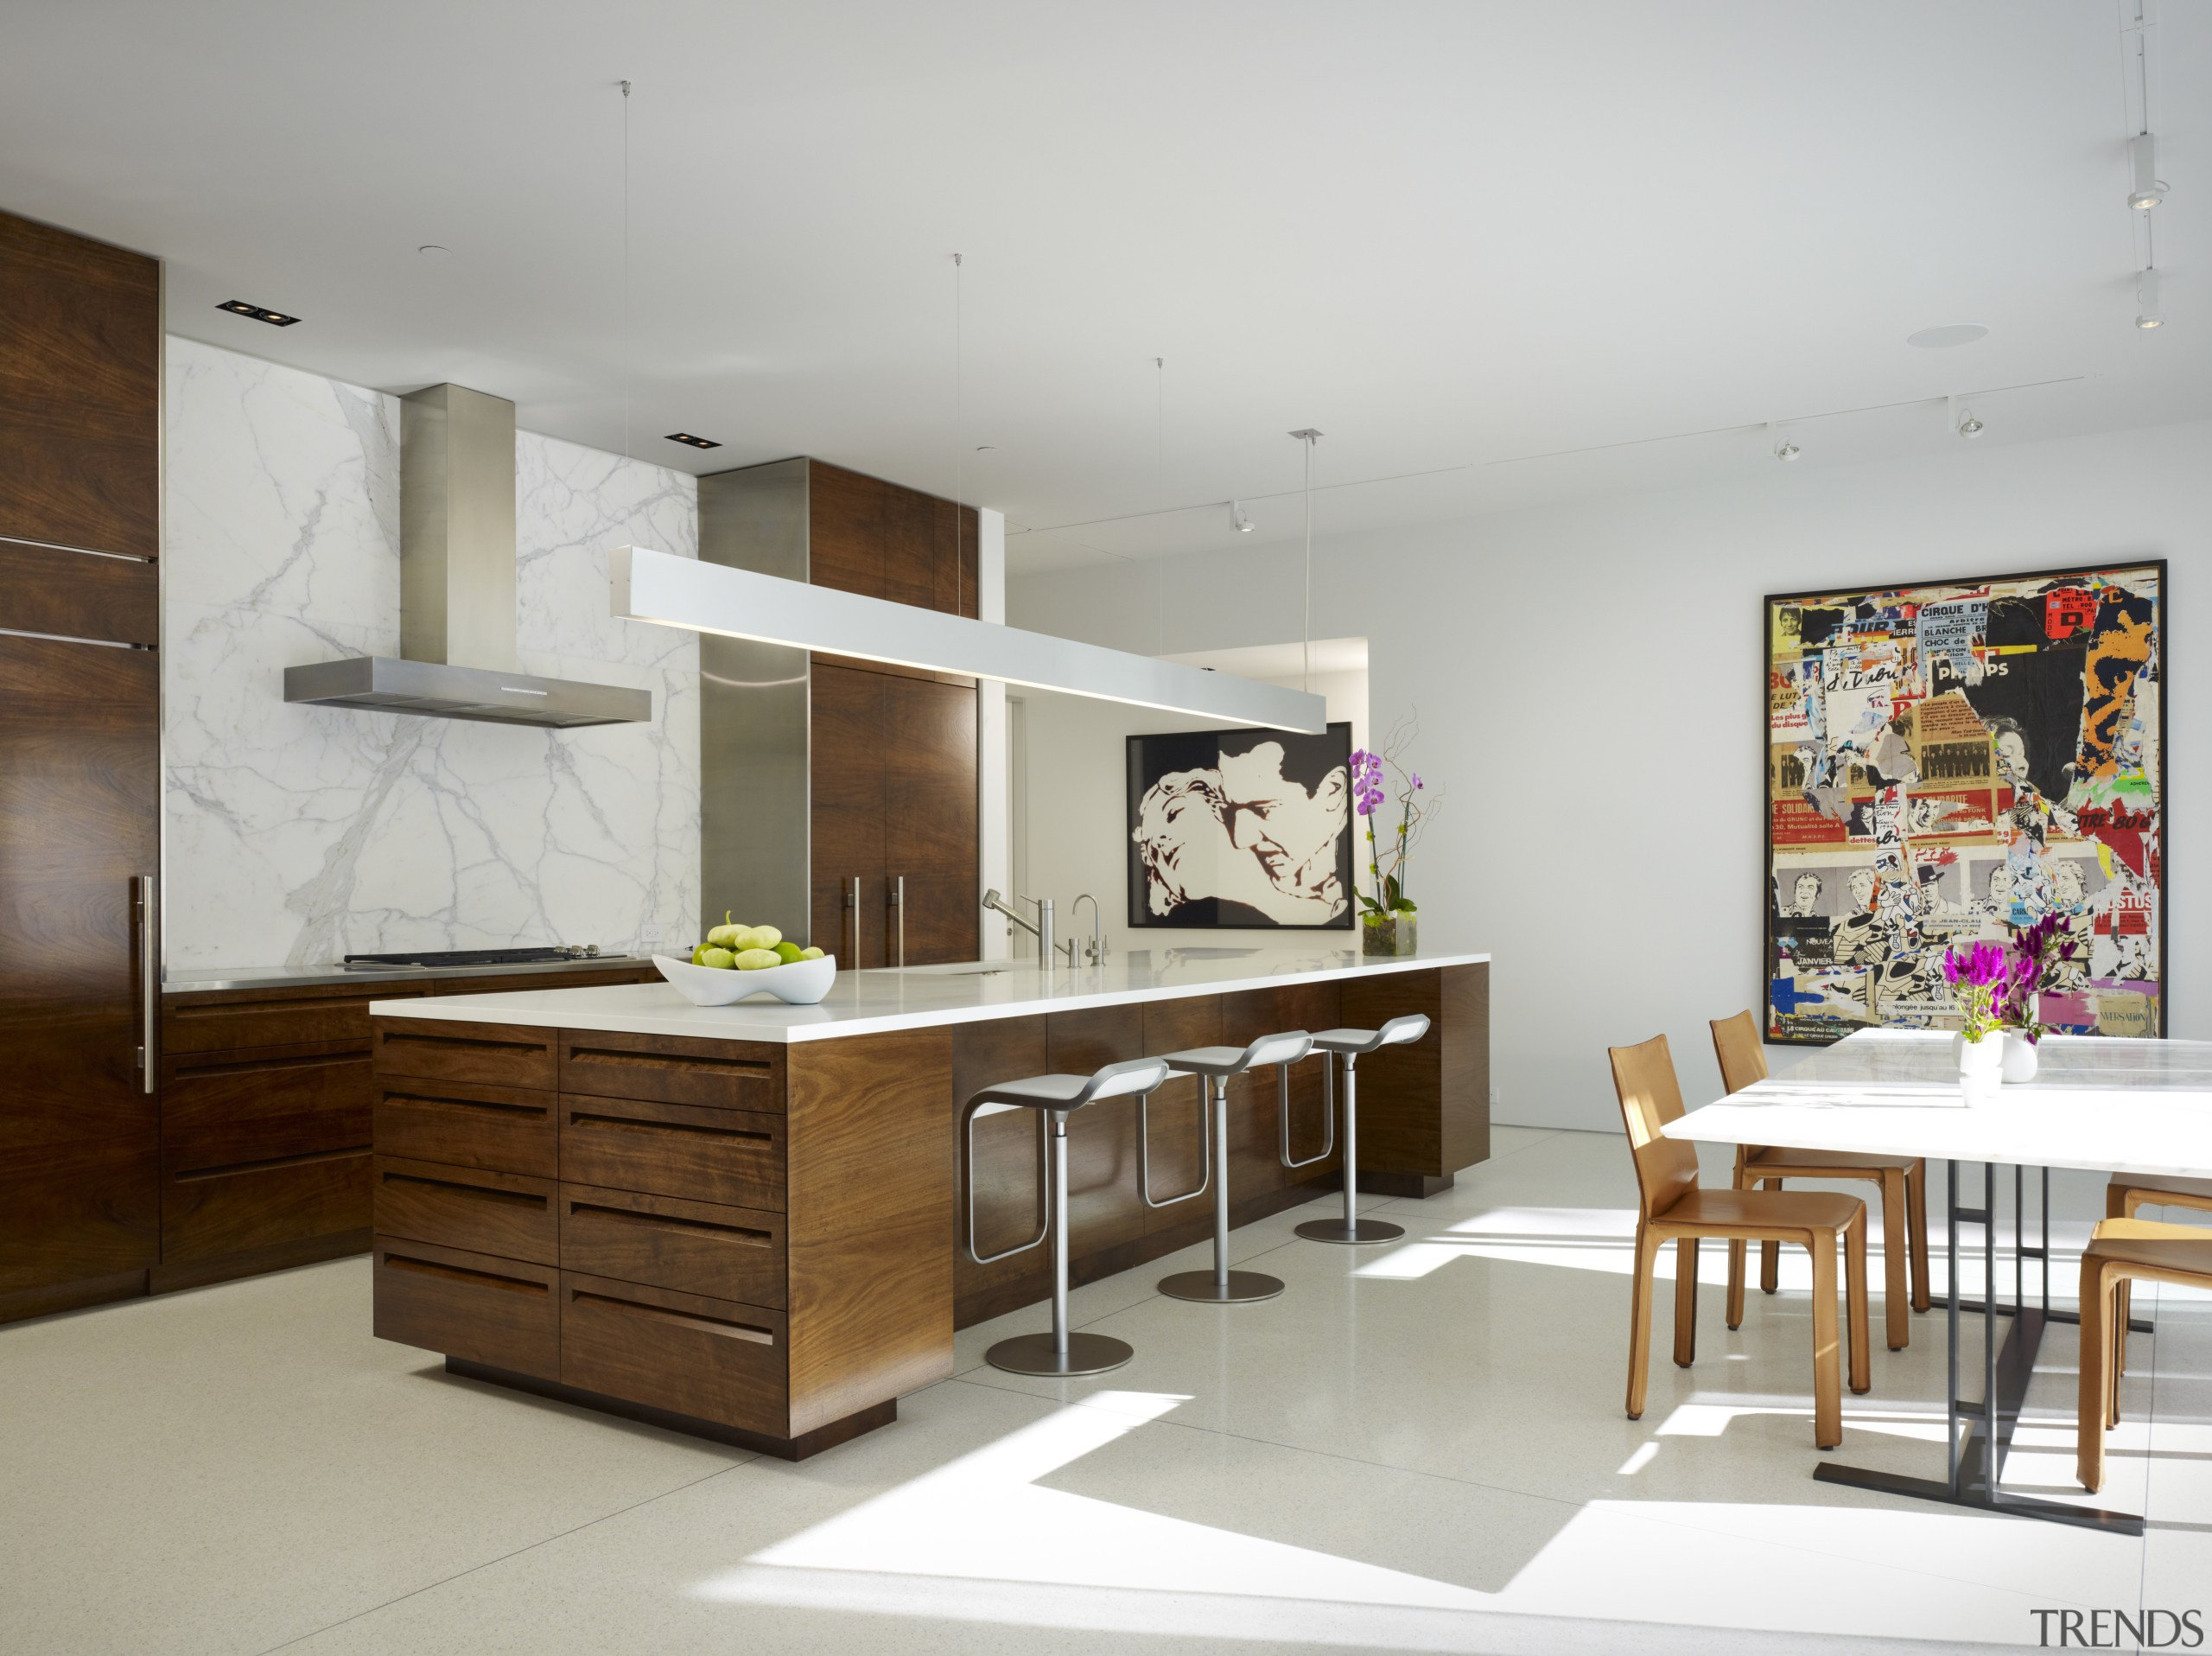 The artwork in the kitchen is by Jacques furniture, interior design, kitchen, product design, table, gray